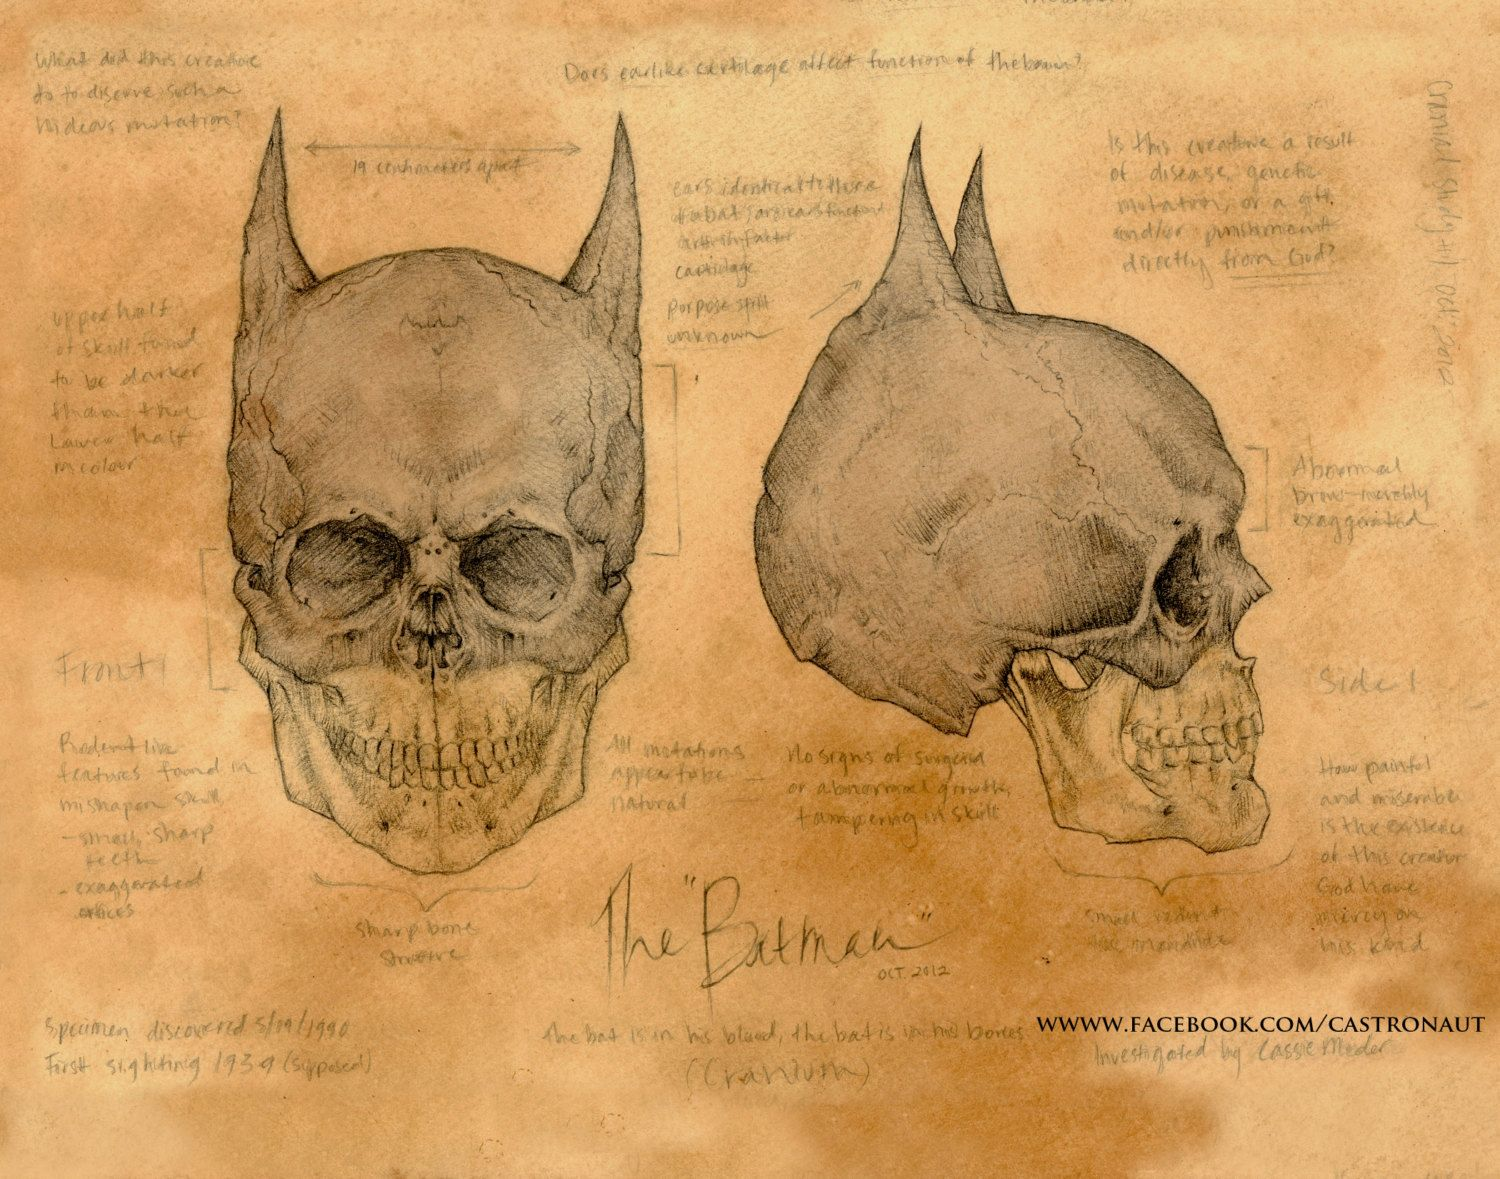 THE BATMAN 11x14 signed and numbered lustre print - Da Vinci ...